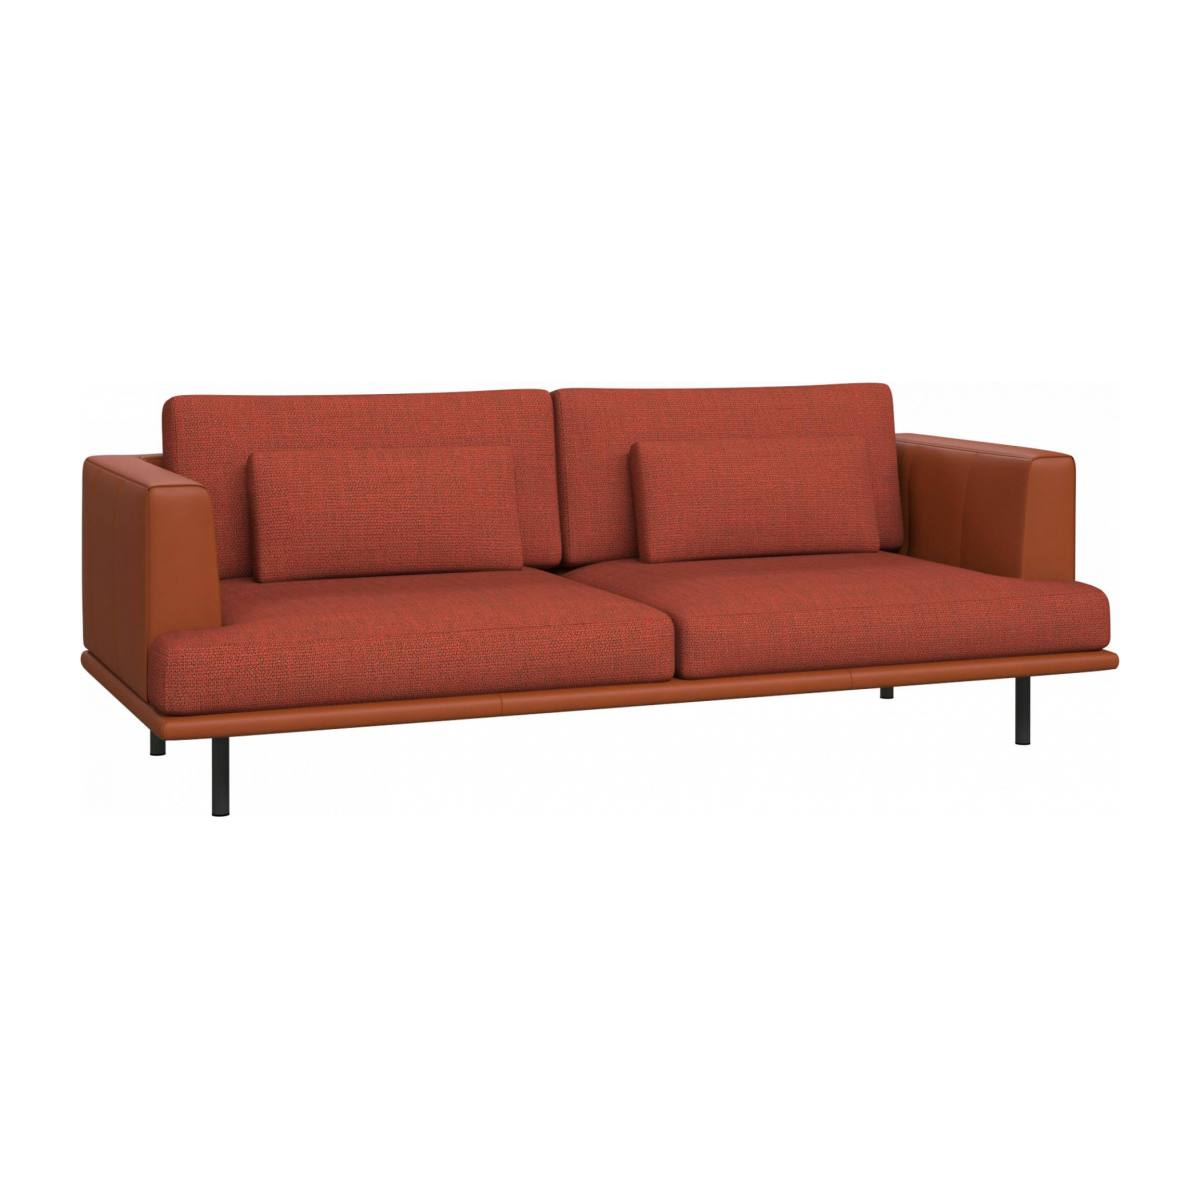 3 seater sofa in Fasoli fabric, warm red rock with base and armrests in brown leather n°3